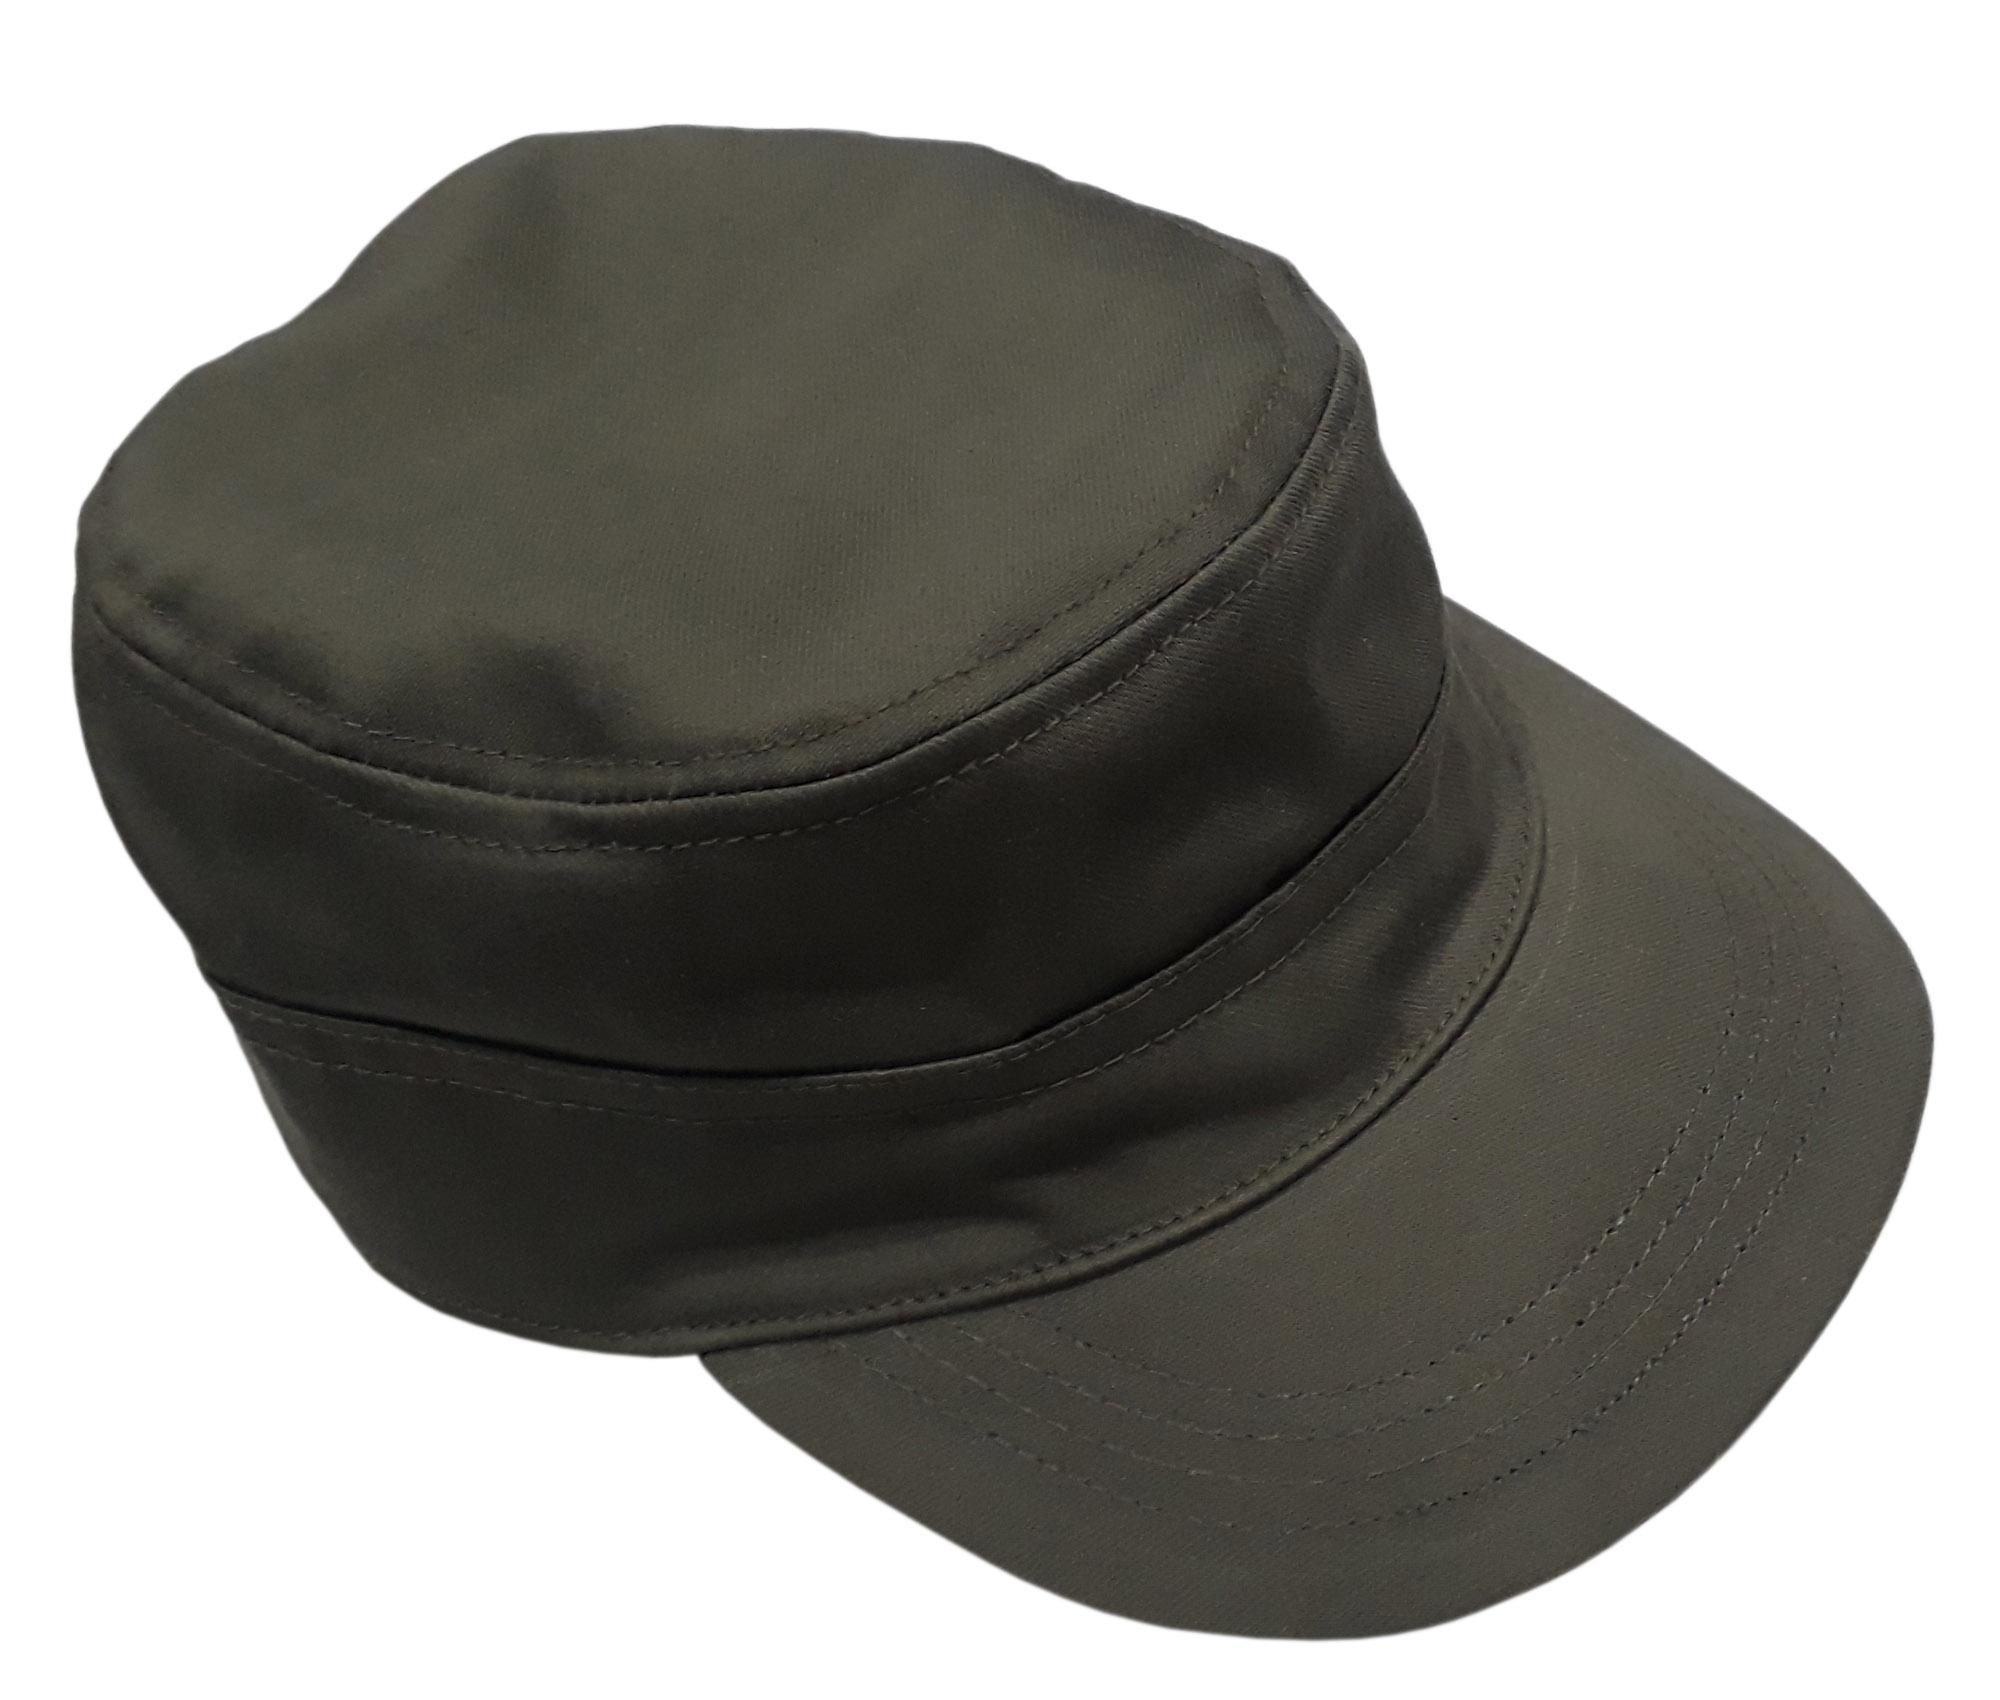 e9b66b42d Men Unisex Vintage Military Cotton Flat Hats Ourdoot Sports Adjustable Cap  - Army Green